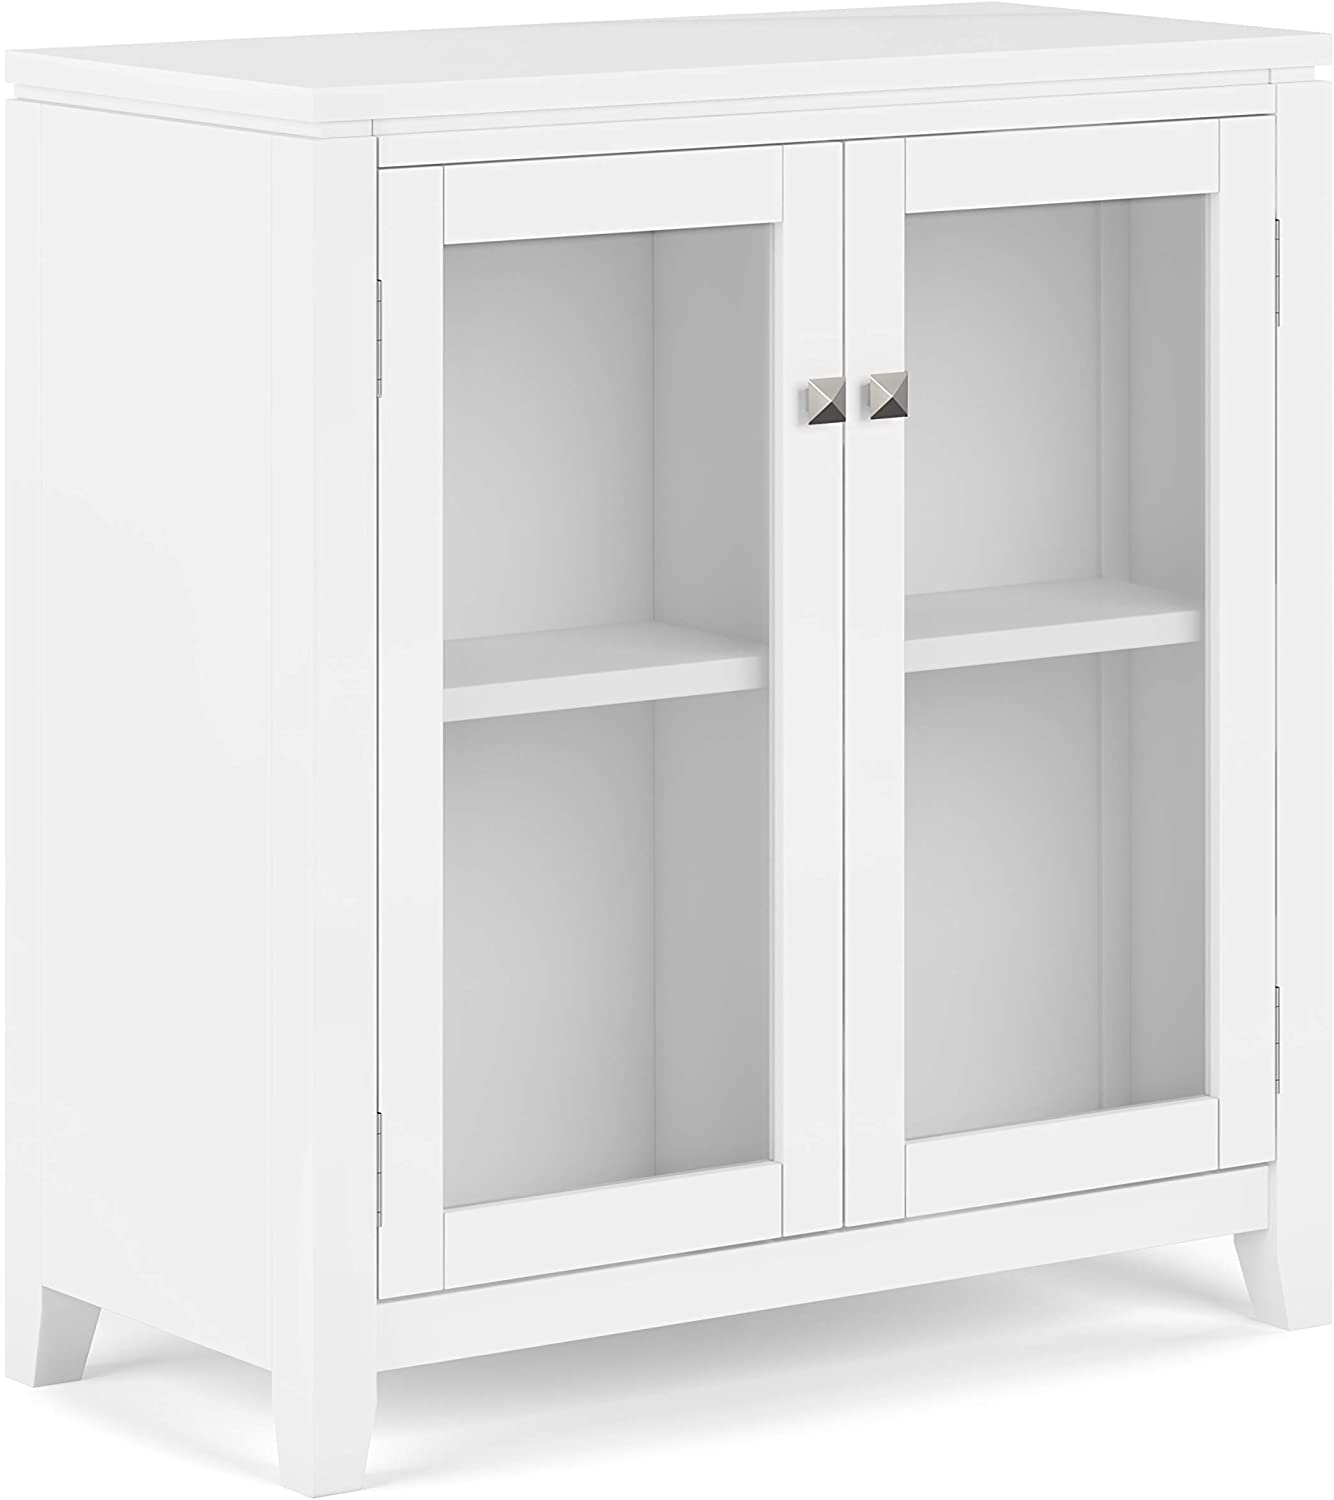 SIMPLIHOME Cosmopolitan SOLID Portland Mall Direct stock discount WOOD 30 Contemporary Wide Low inch